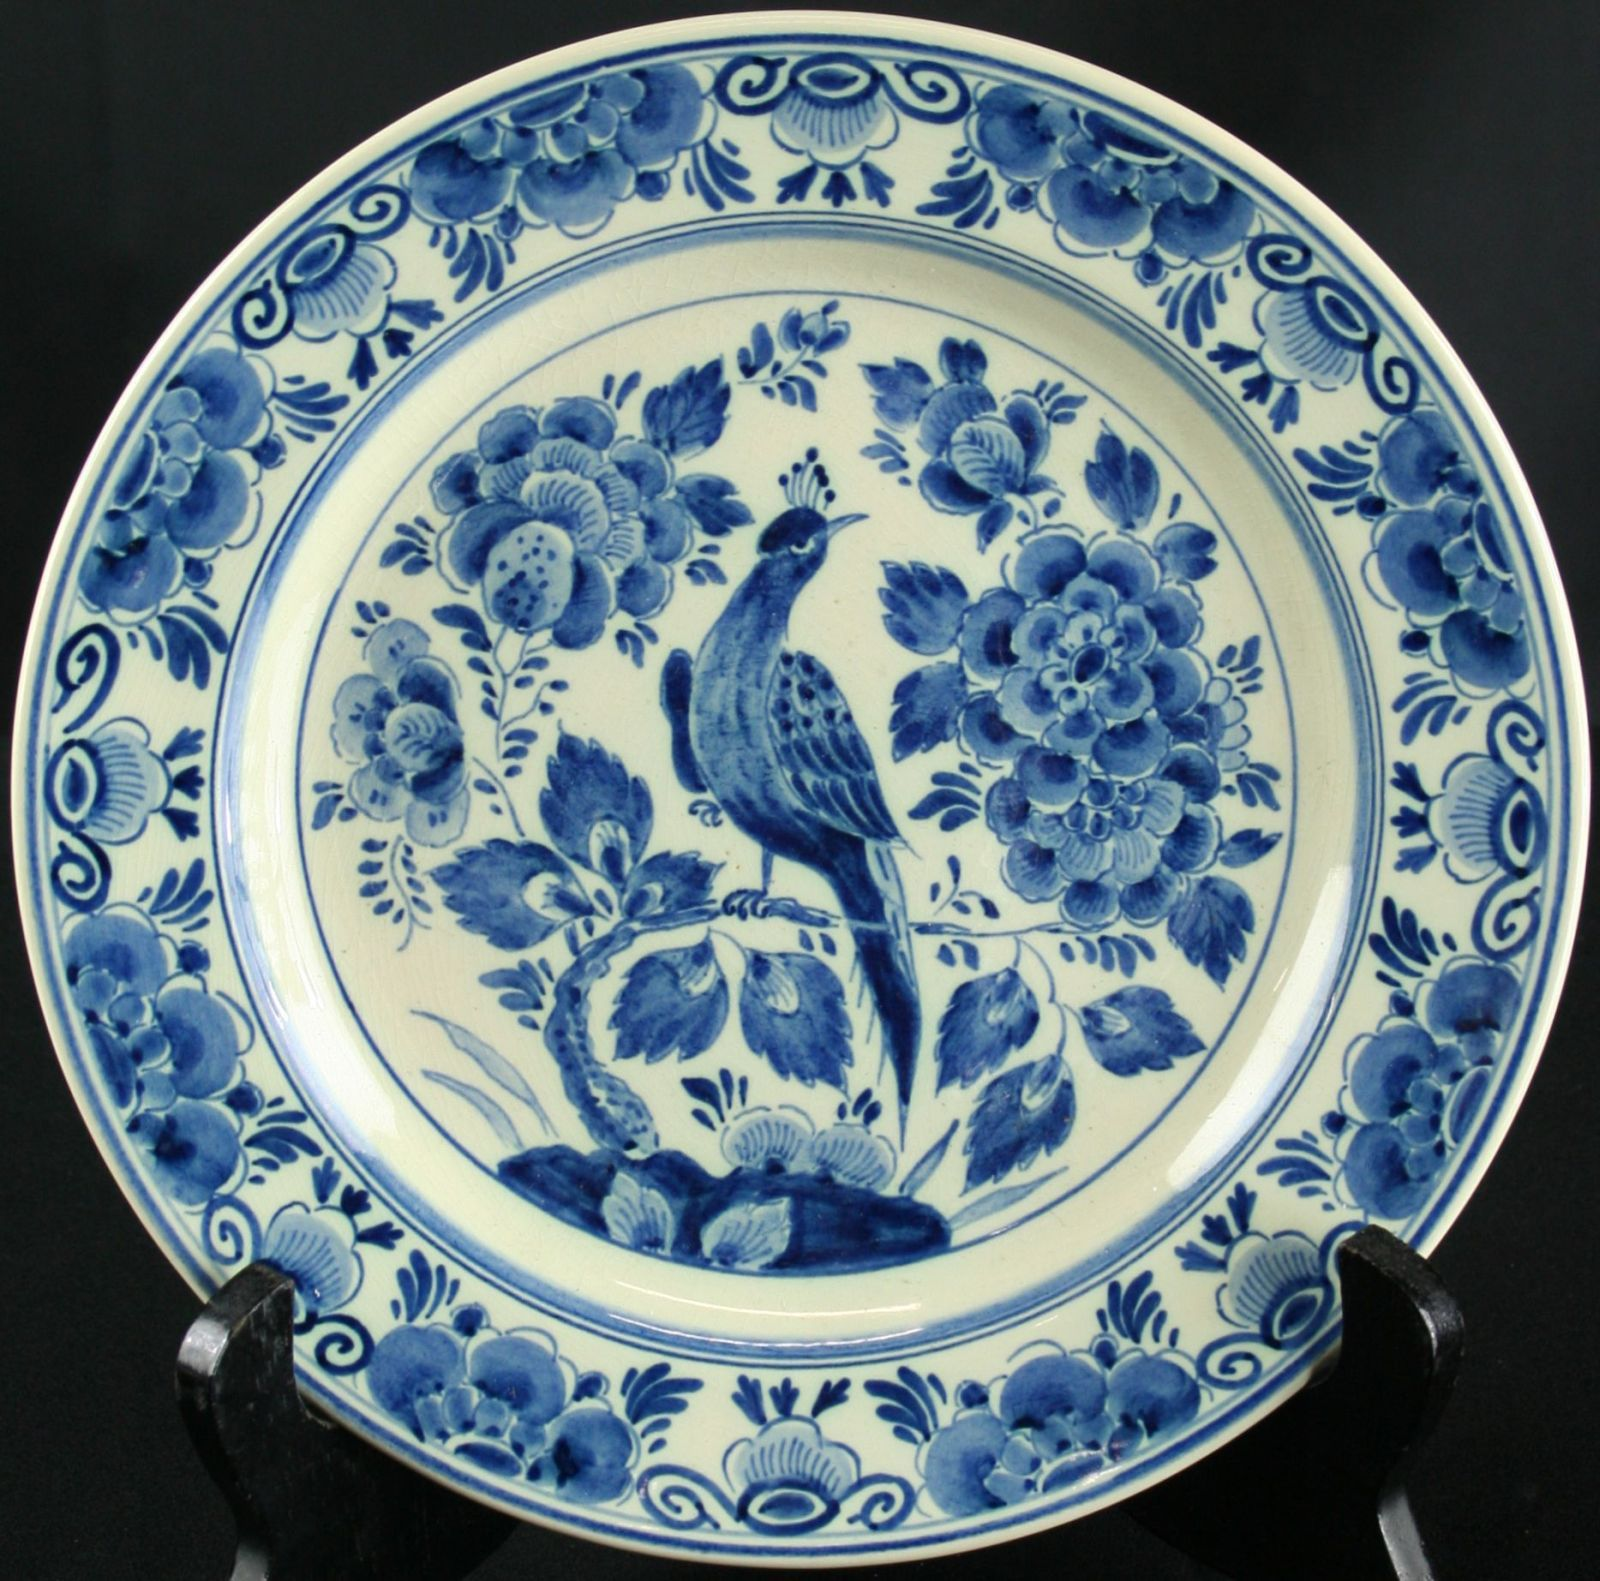 Vintage blue plate with peacock